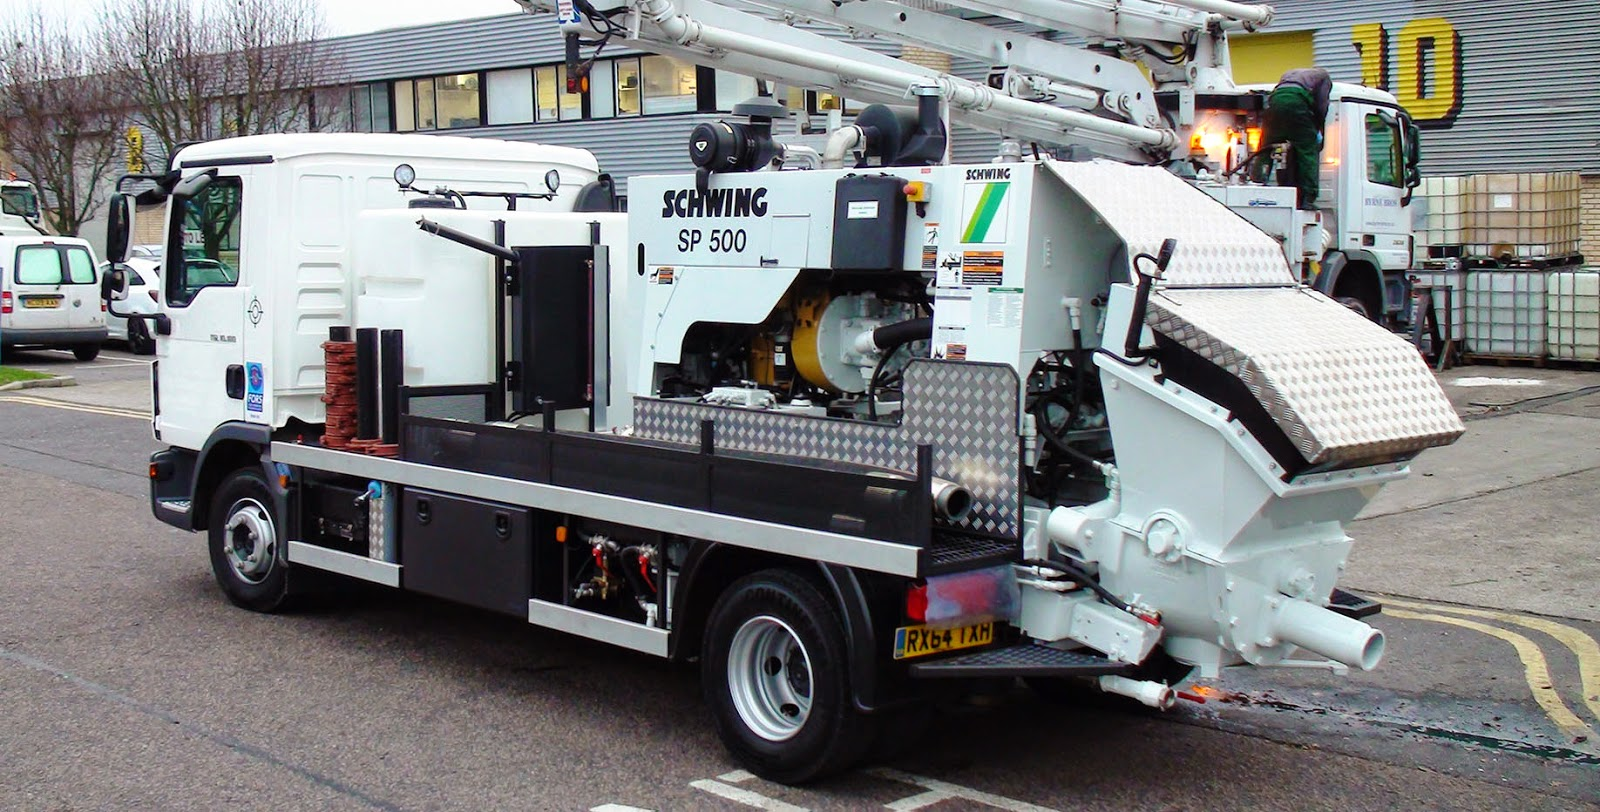 One of the Schwing Stetter (UK) truck mounted stationary concrete pumps with 'all the trimmings'